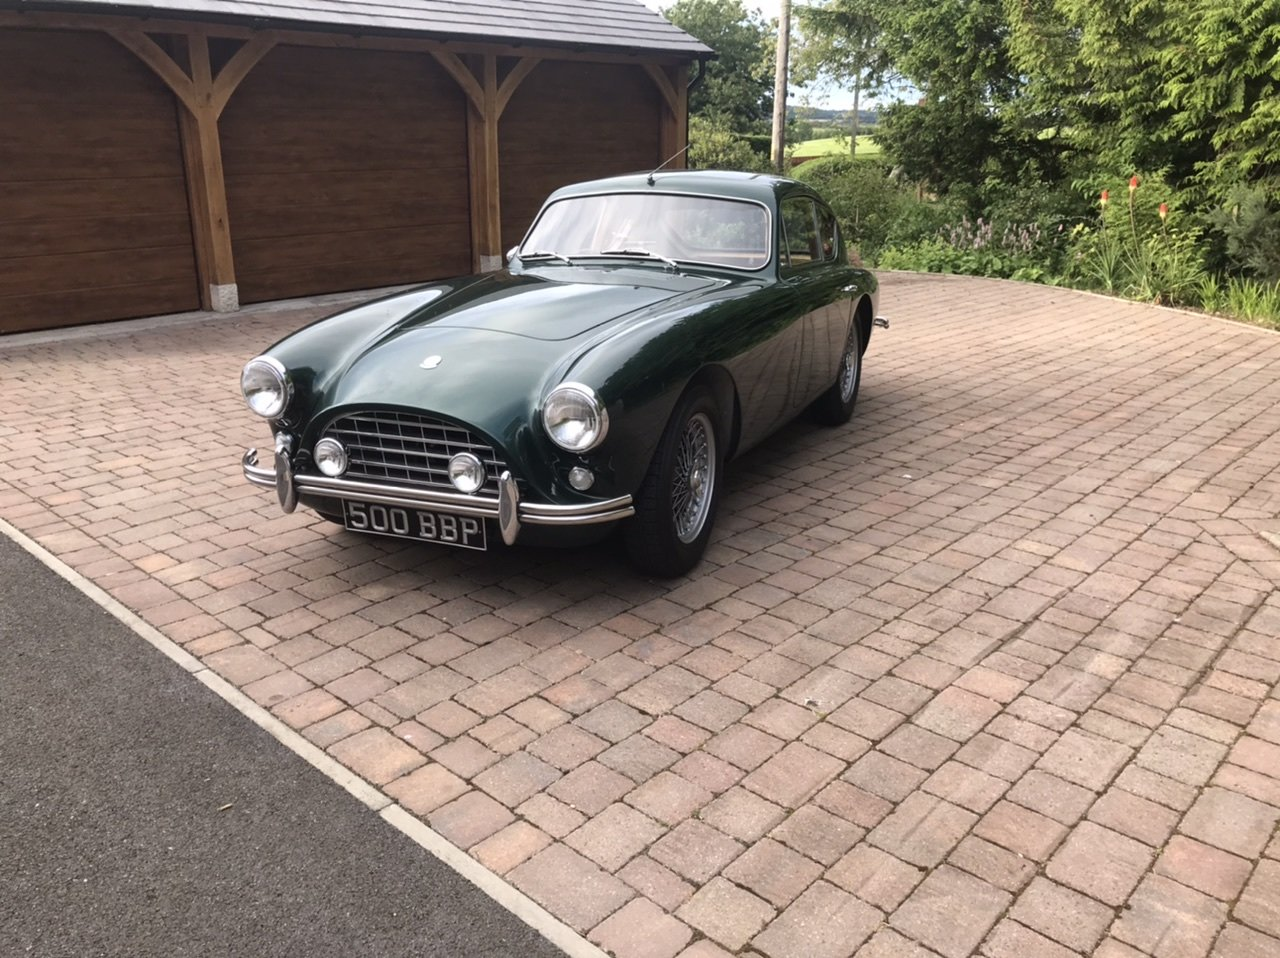 1961 Aceca Bristol For Sale (picture 1 of 5)